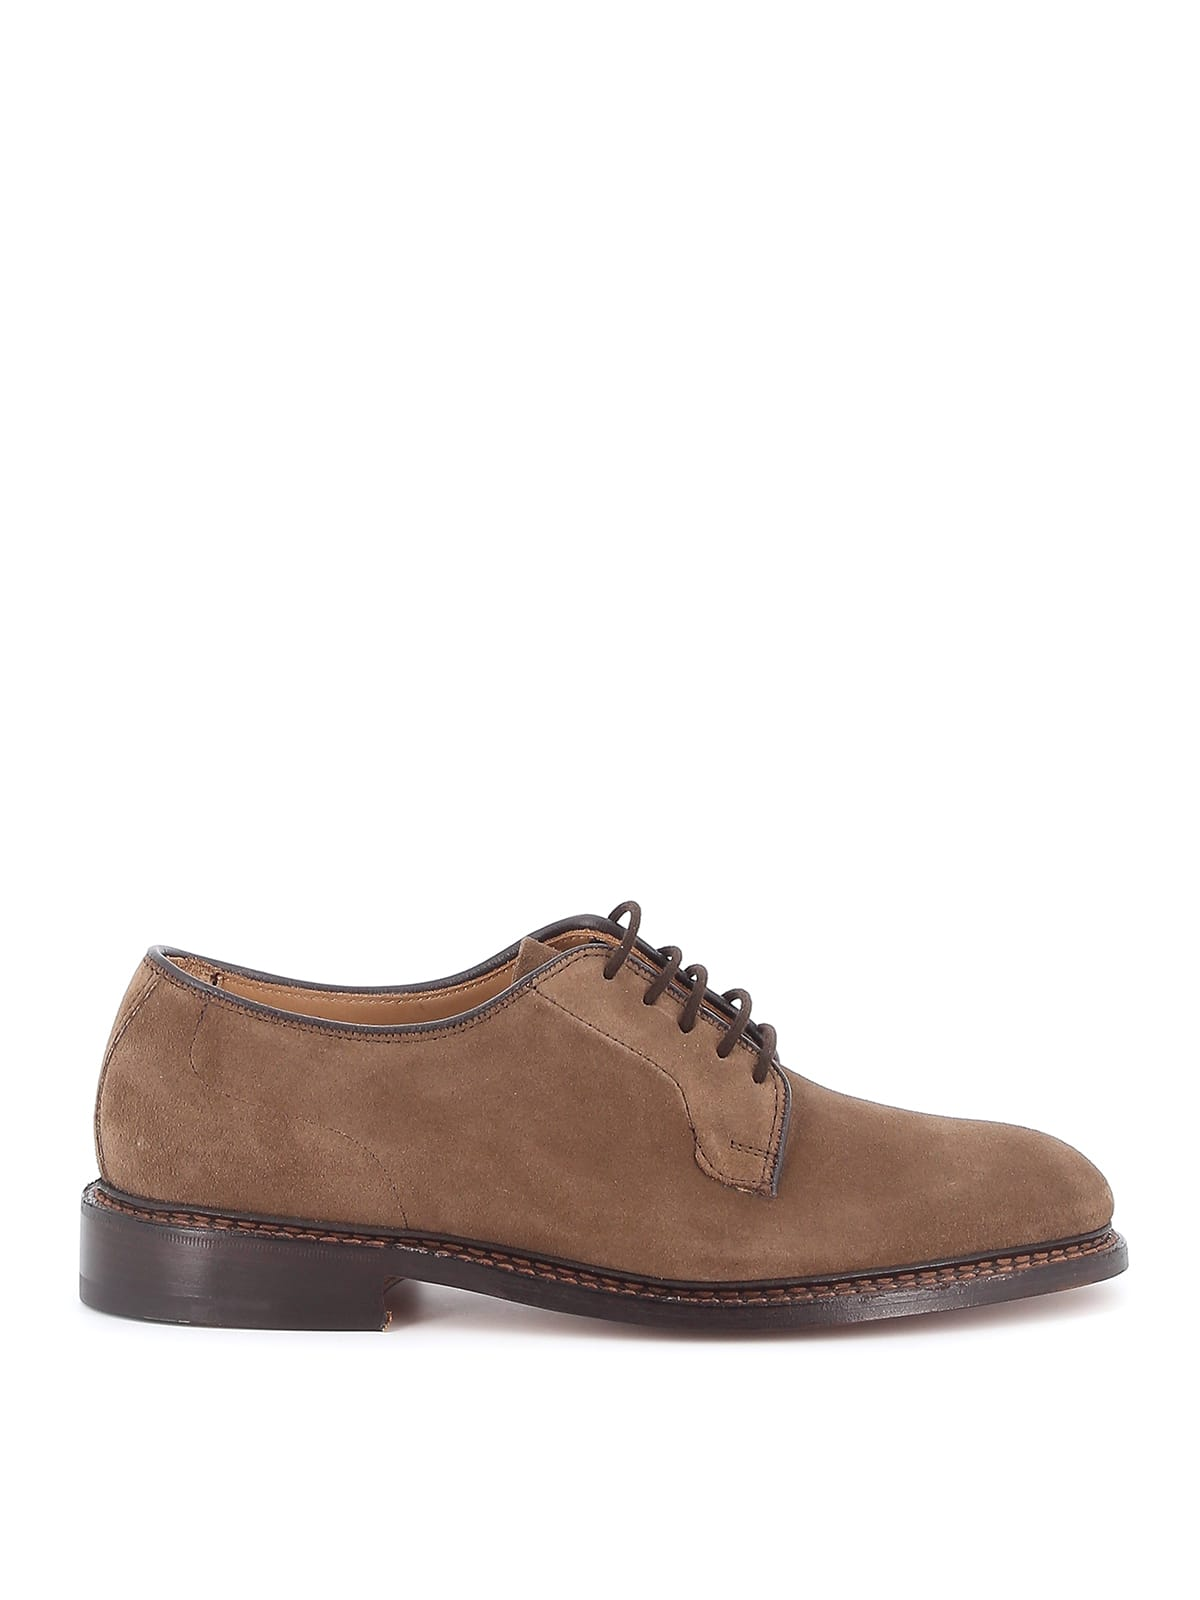 Trickers Robert Plain Derby Castorino Suede